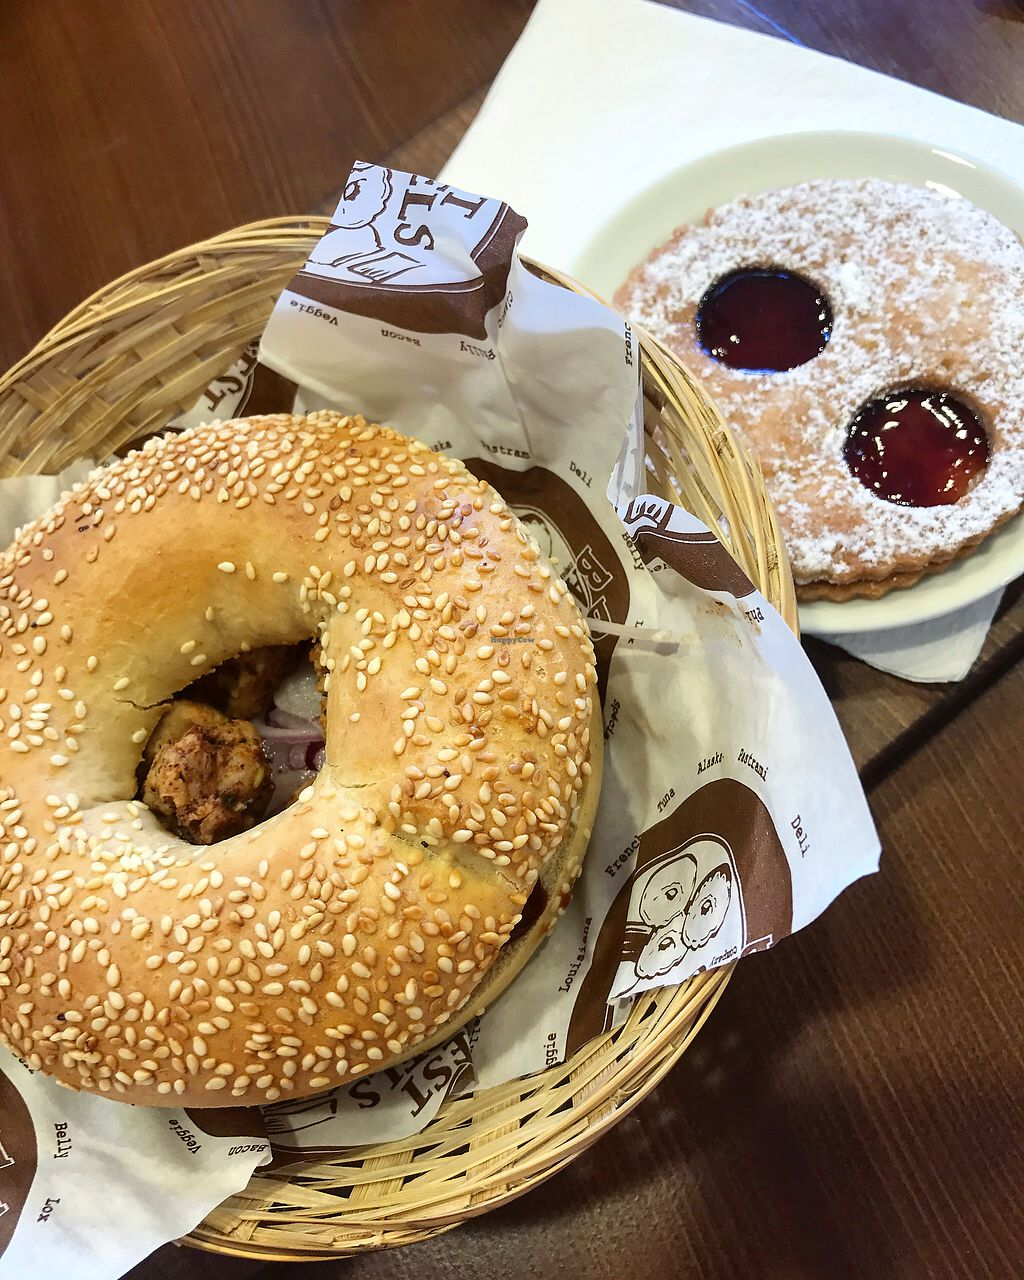 """Photo of Best Bagels Gambetta  by <a href=""""/members/profile/MusicalVeggie"""">MusicalVeggie</a> <br/>Alaska fire bagel and raspberry cookie  <br/> September 5, 2017  - <a href='/contact/abuse/image/93514/301211'>Report</a>"""